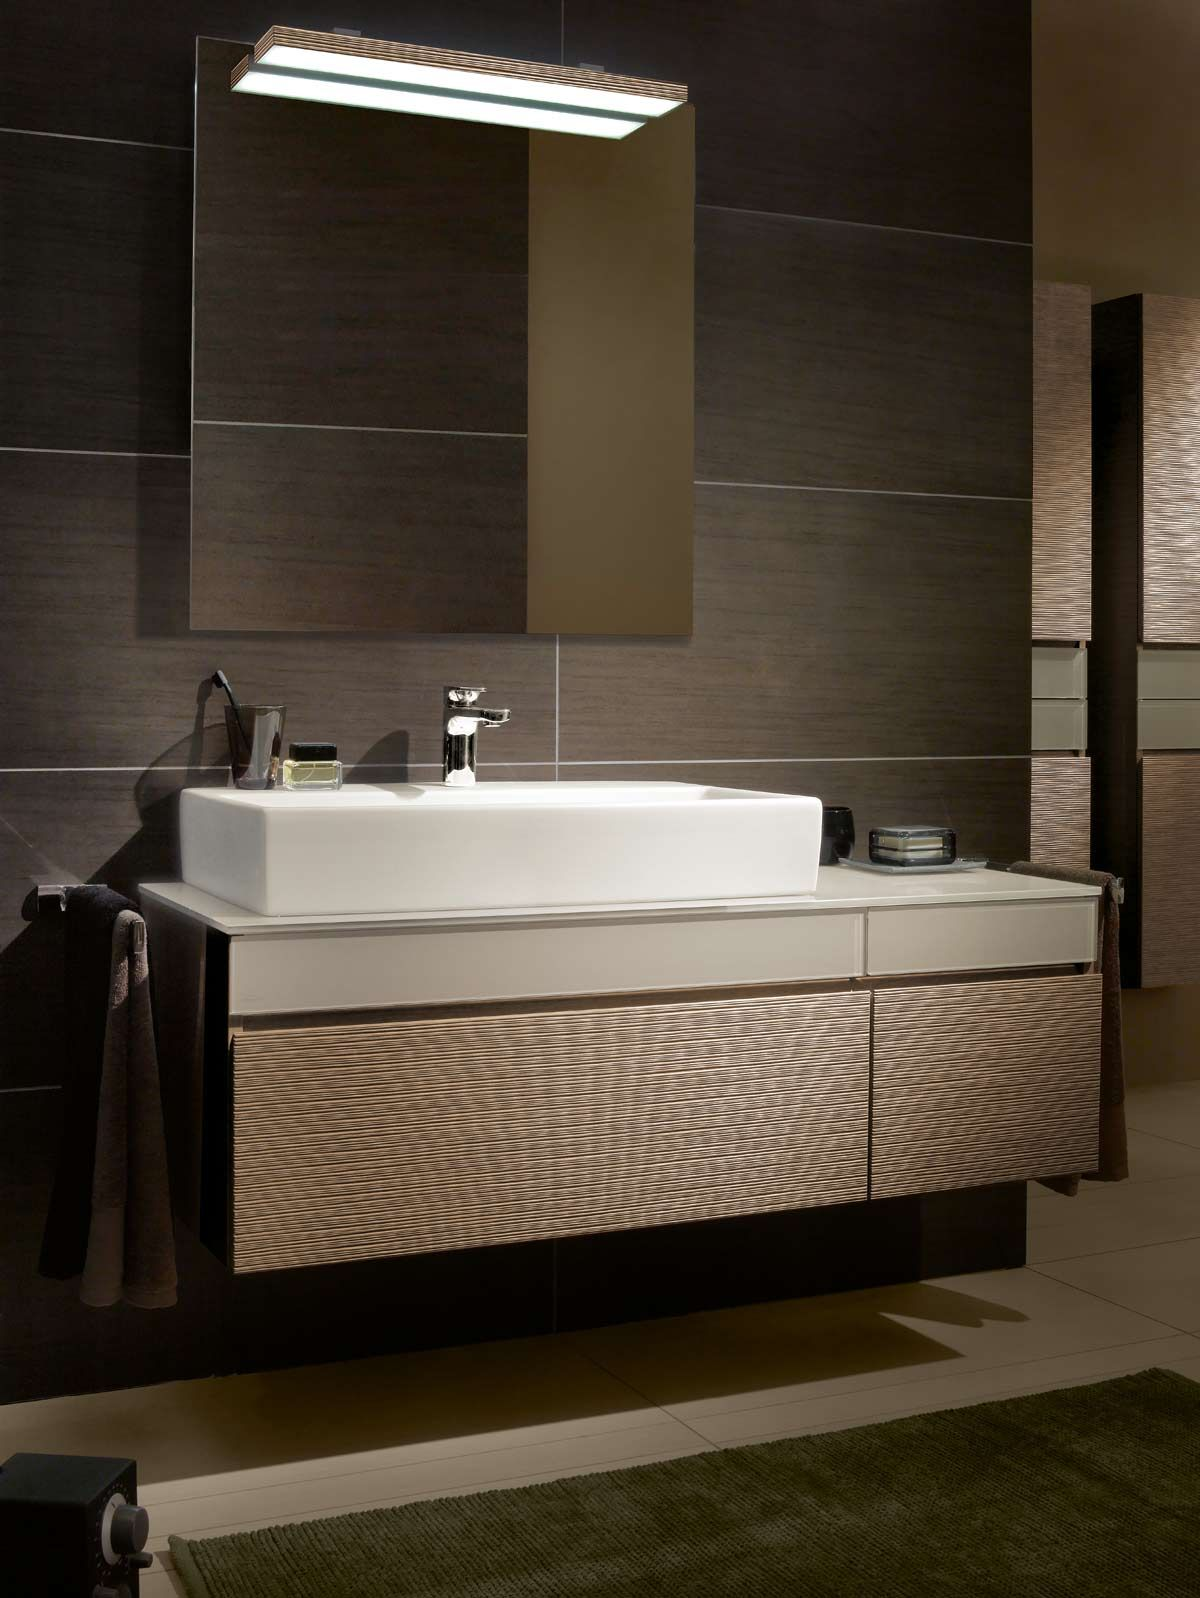 Merveilleux European Bathrooms, Luxury Bathroom Designers In Windsor And Amersham. We  Stock Villeroy U0026 Boch